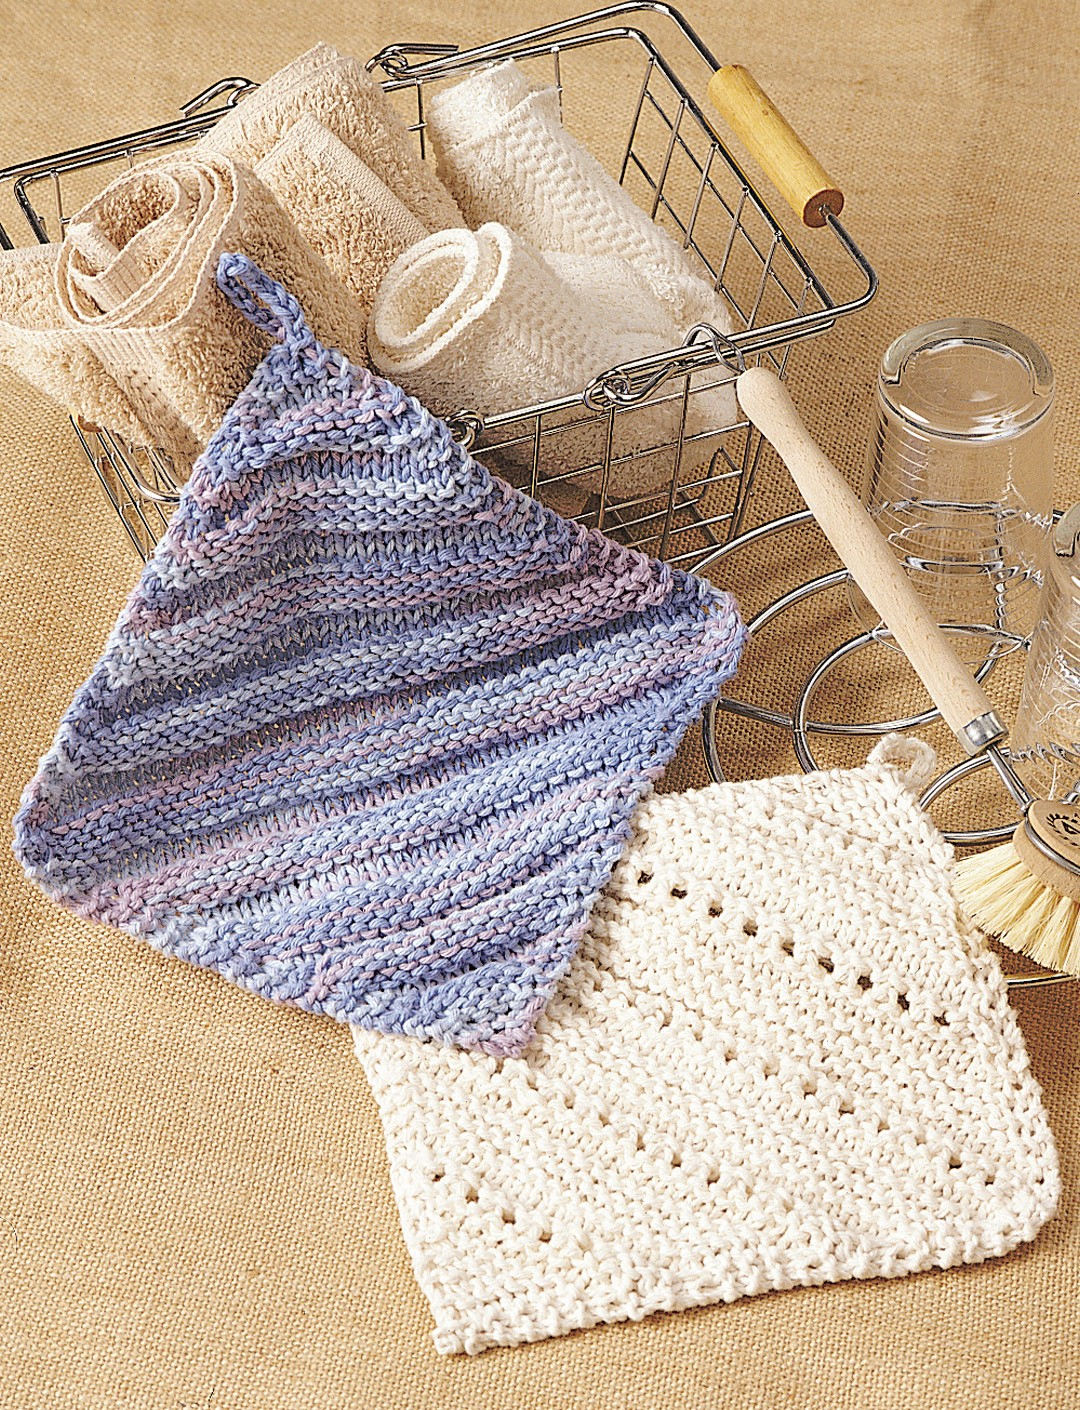 Simple Ridge & Eyelet Dishcloth - Patterns Yarnspirations